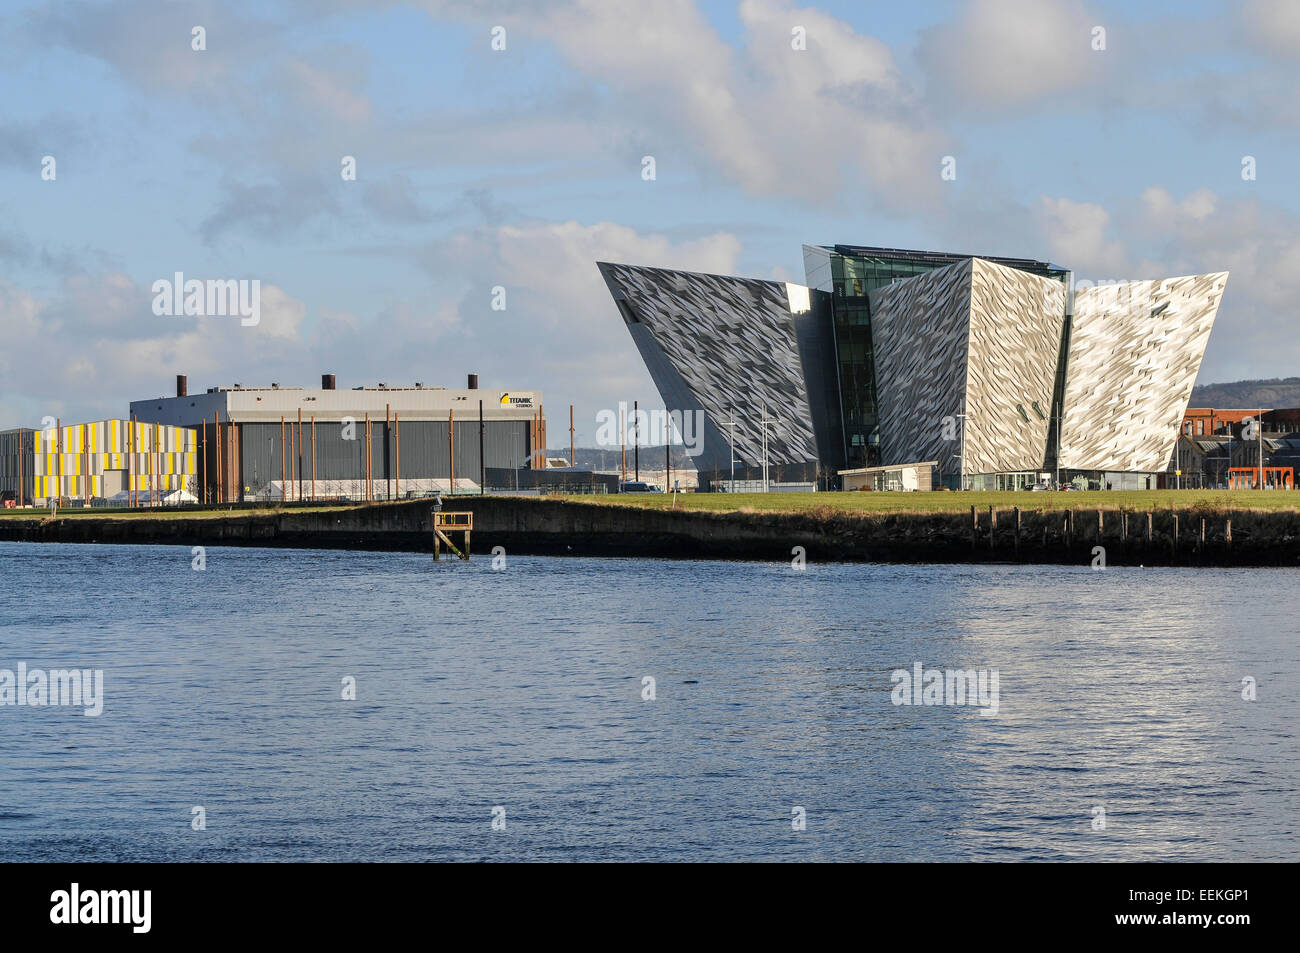 Titanic Belfast with the Titanic Film Studios behind, where Game of Thrones is filmed. Stock Photo